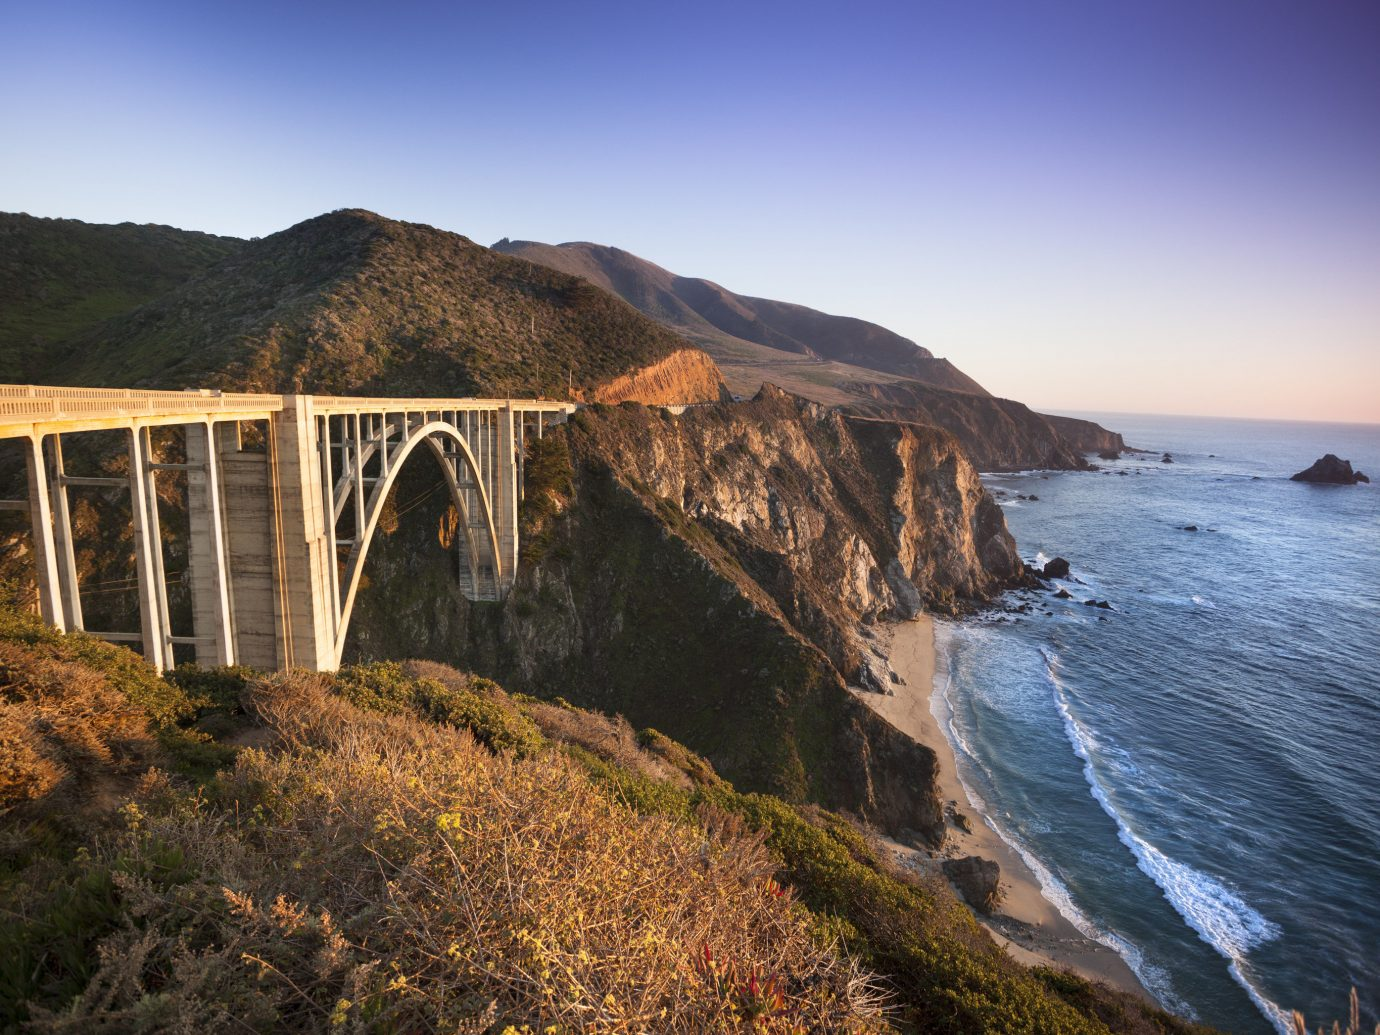 Offbeat Trip Ideas outdoor sky mountain grass Coast body of water Sea bridge water Ocean rock Nature cliff shore landscape terrain bay wave reservoir hillside